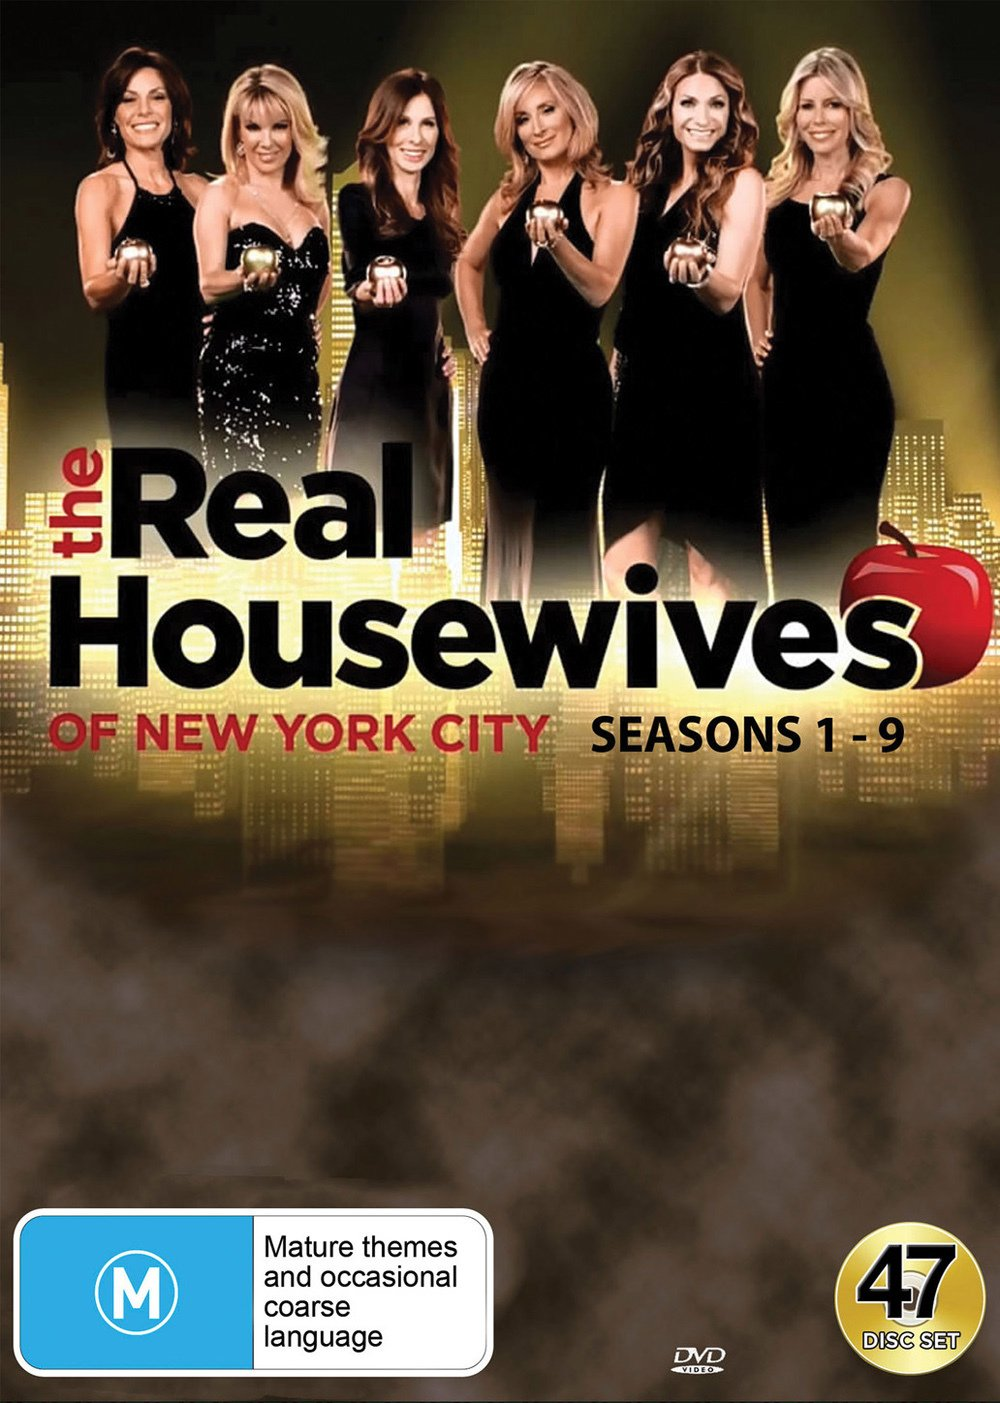 Real Housewives of New York: Seasons 1-9